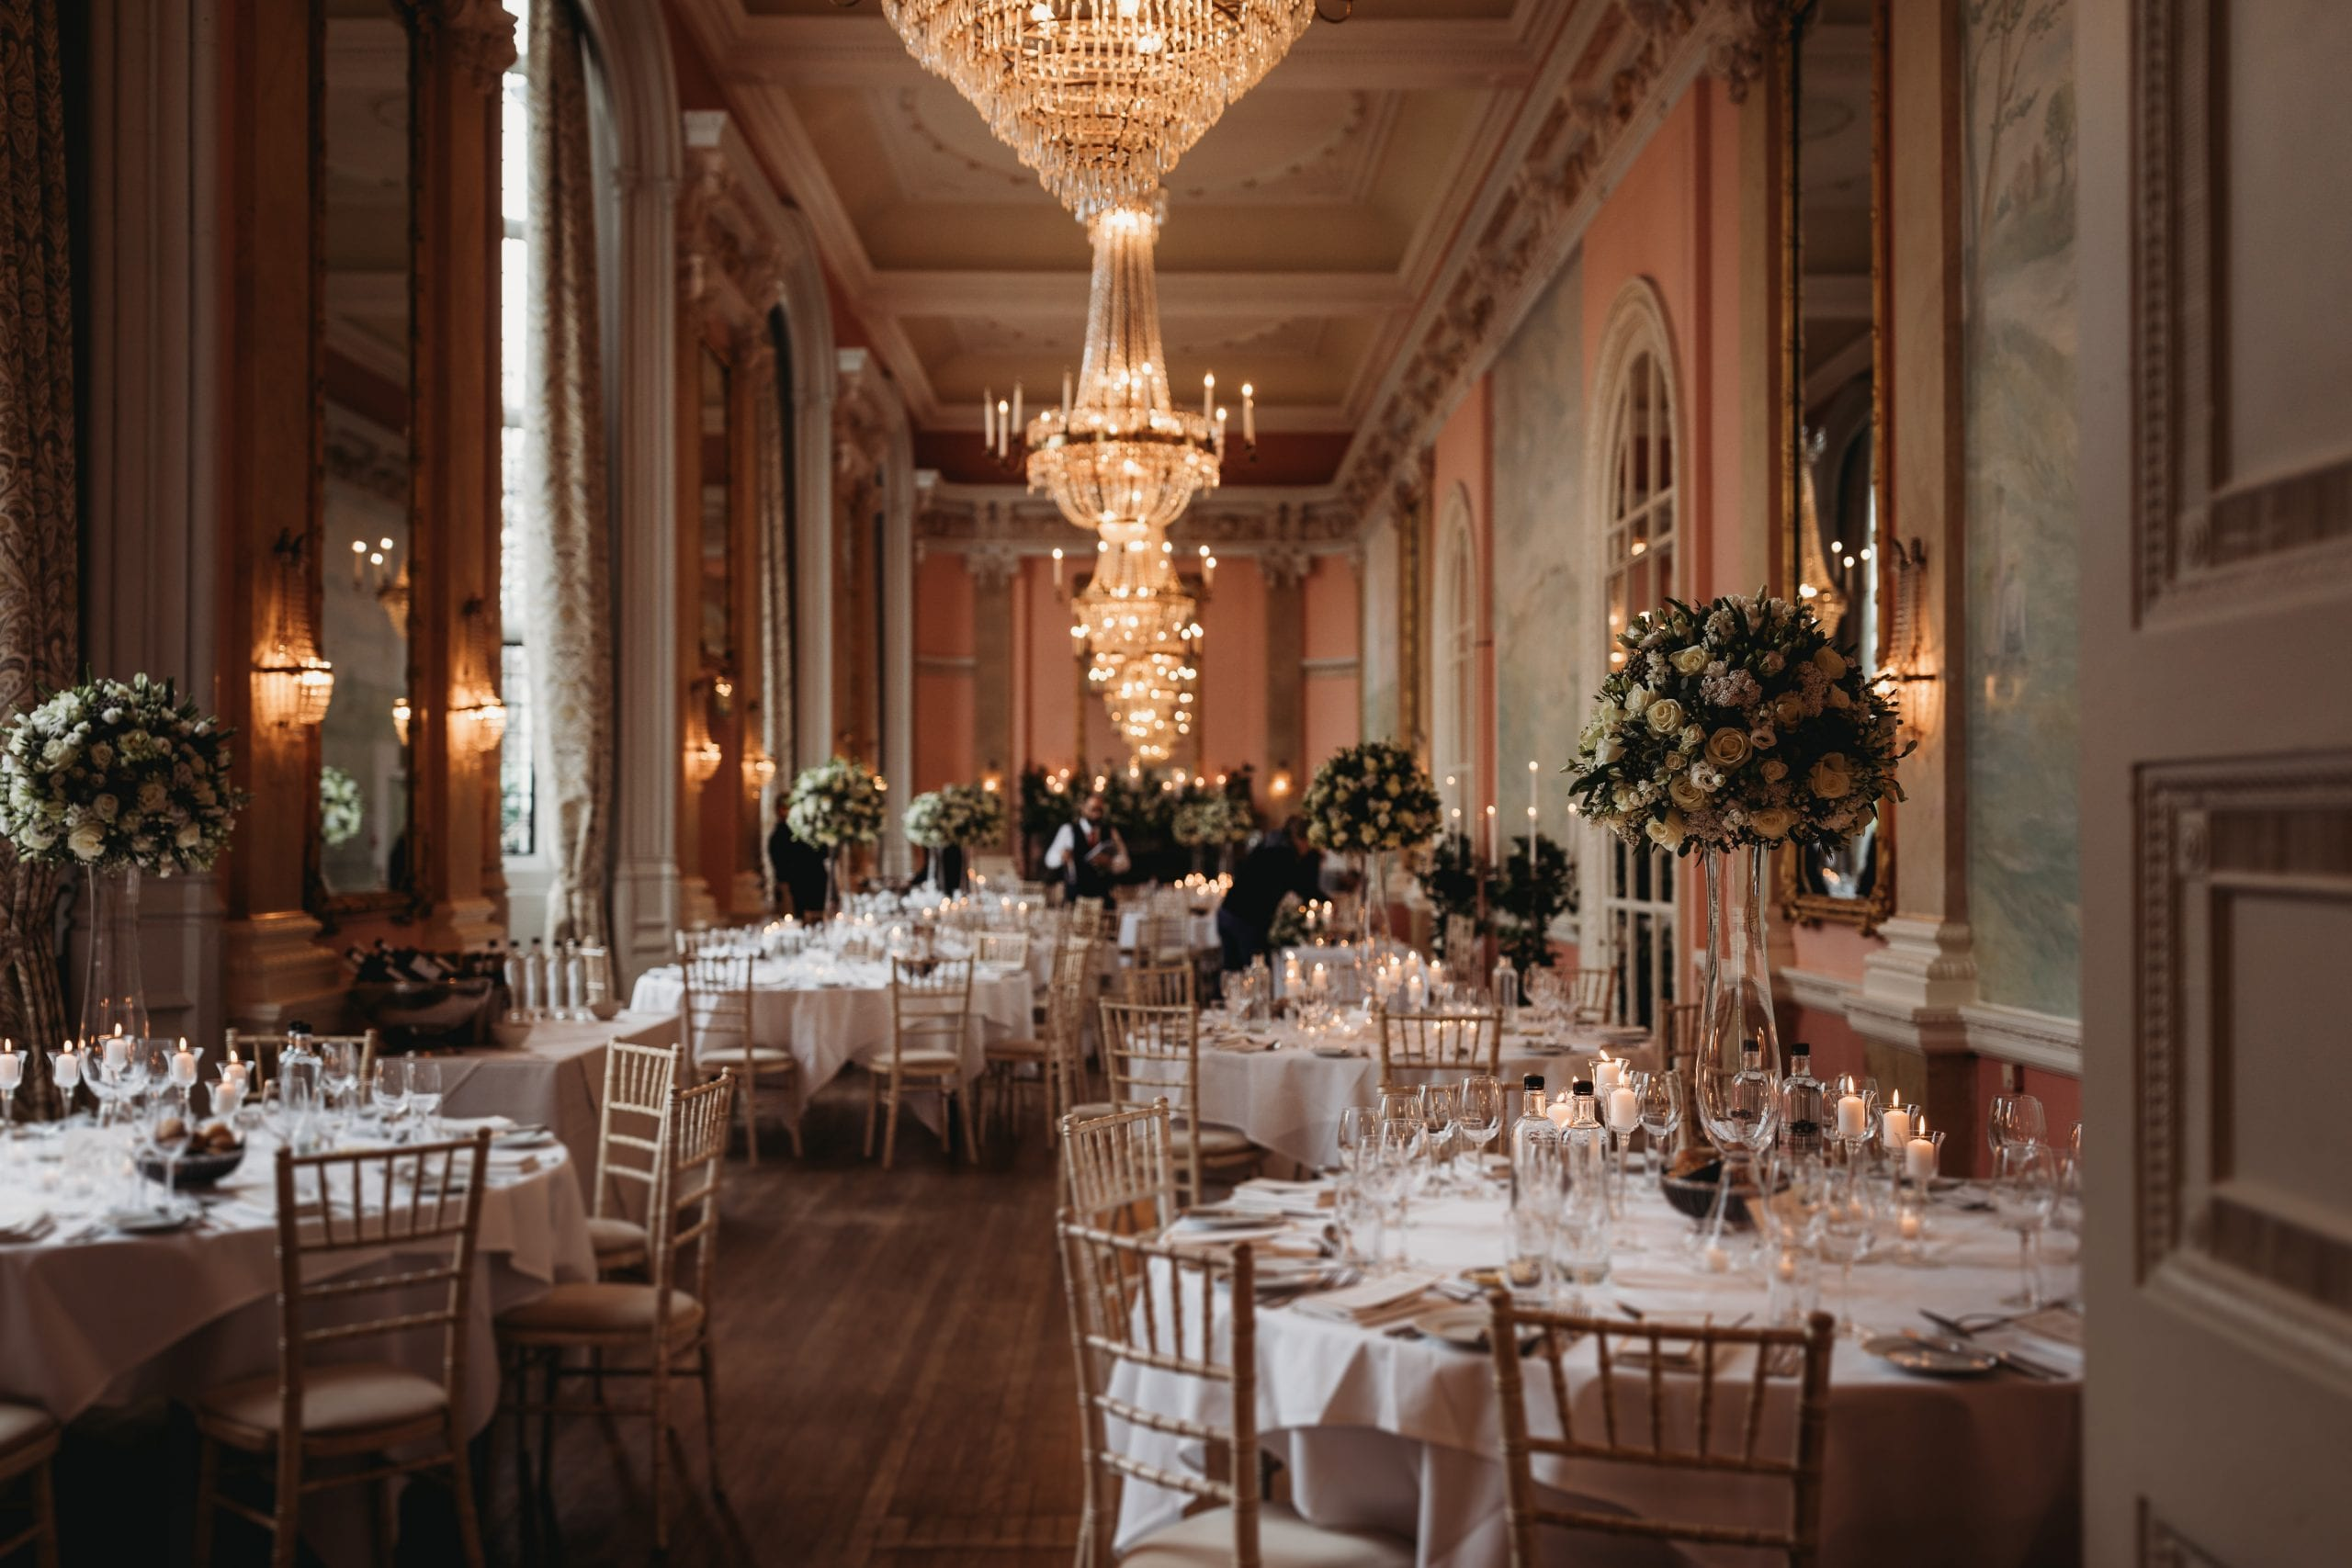 Wedding breakfast room at a Danesfield House wedding